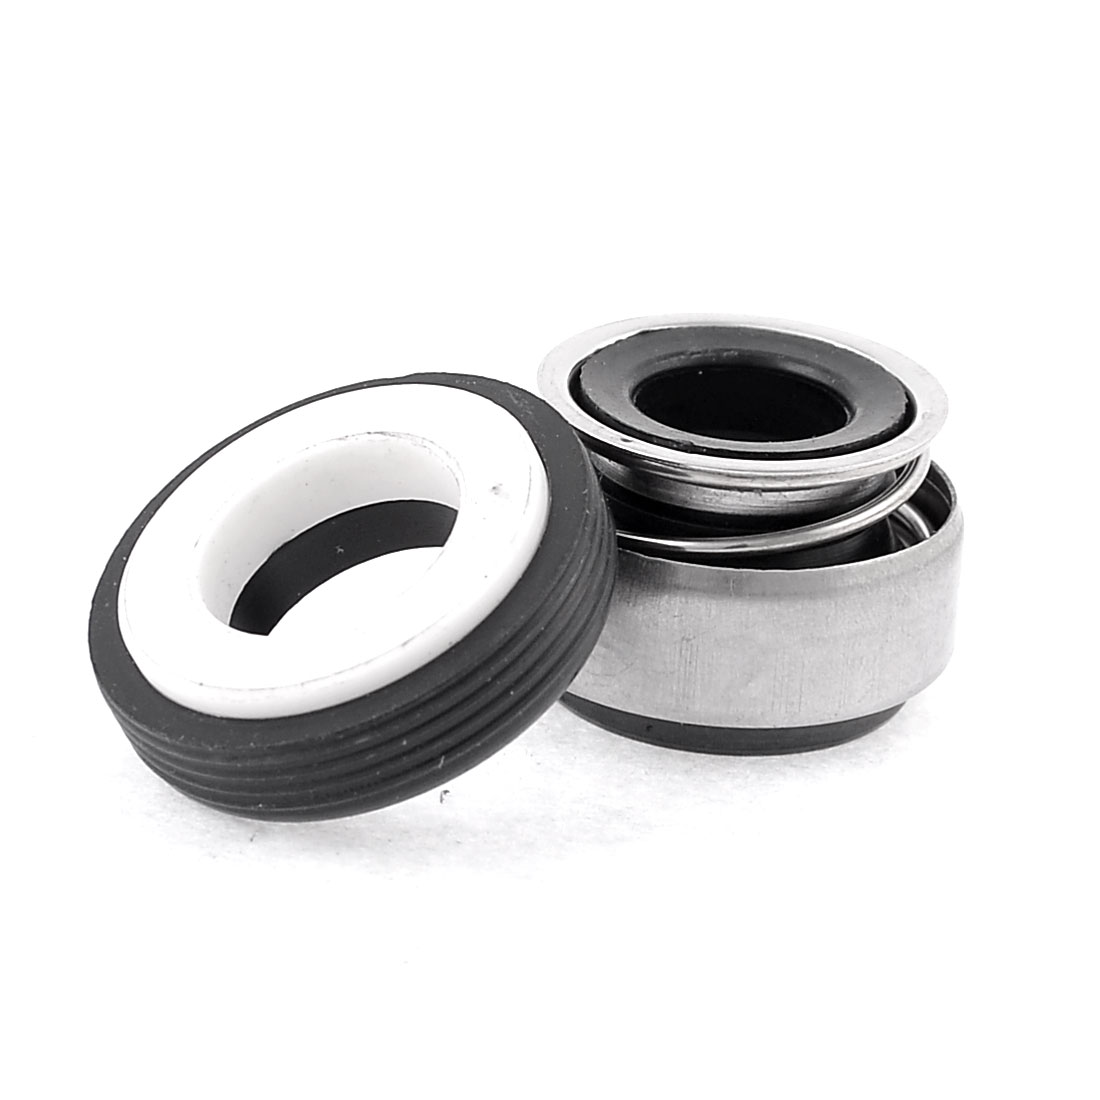 UXCELL Metal Spring 12Mm Inner Dia Rubber Bellows Water Pump Mechanical Seal